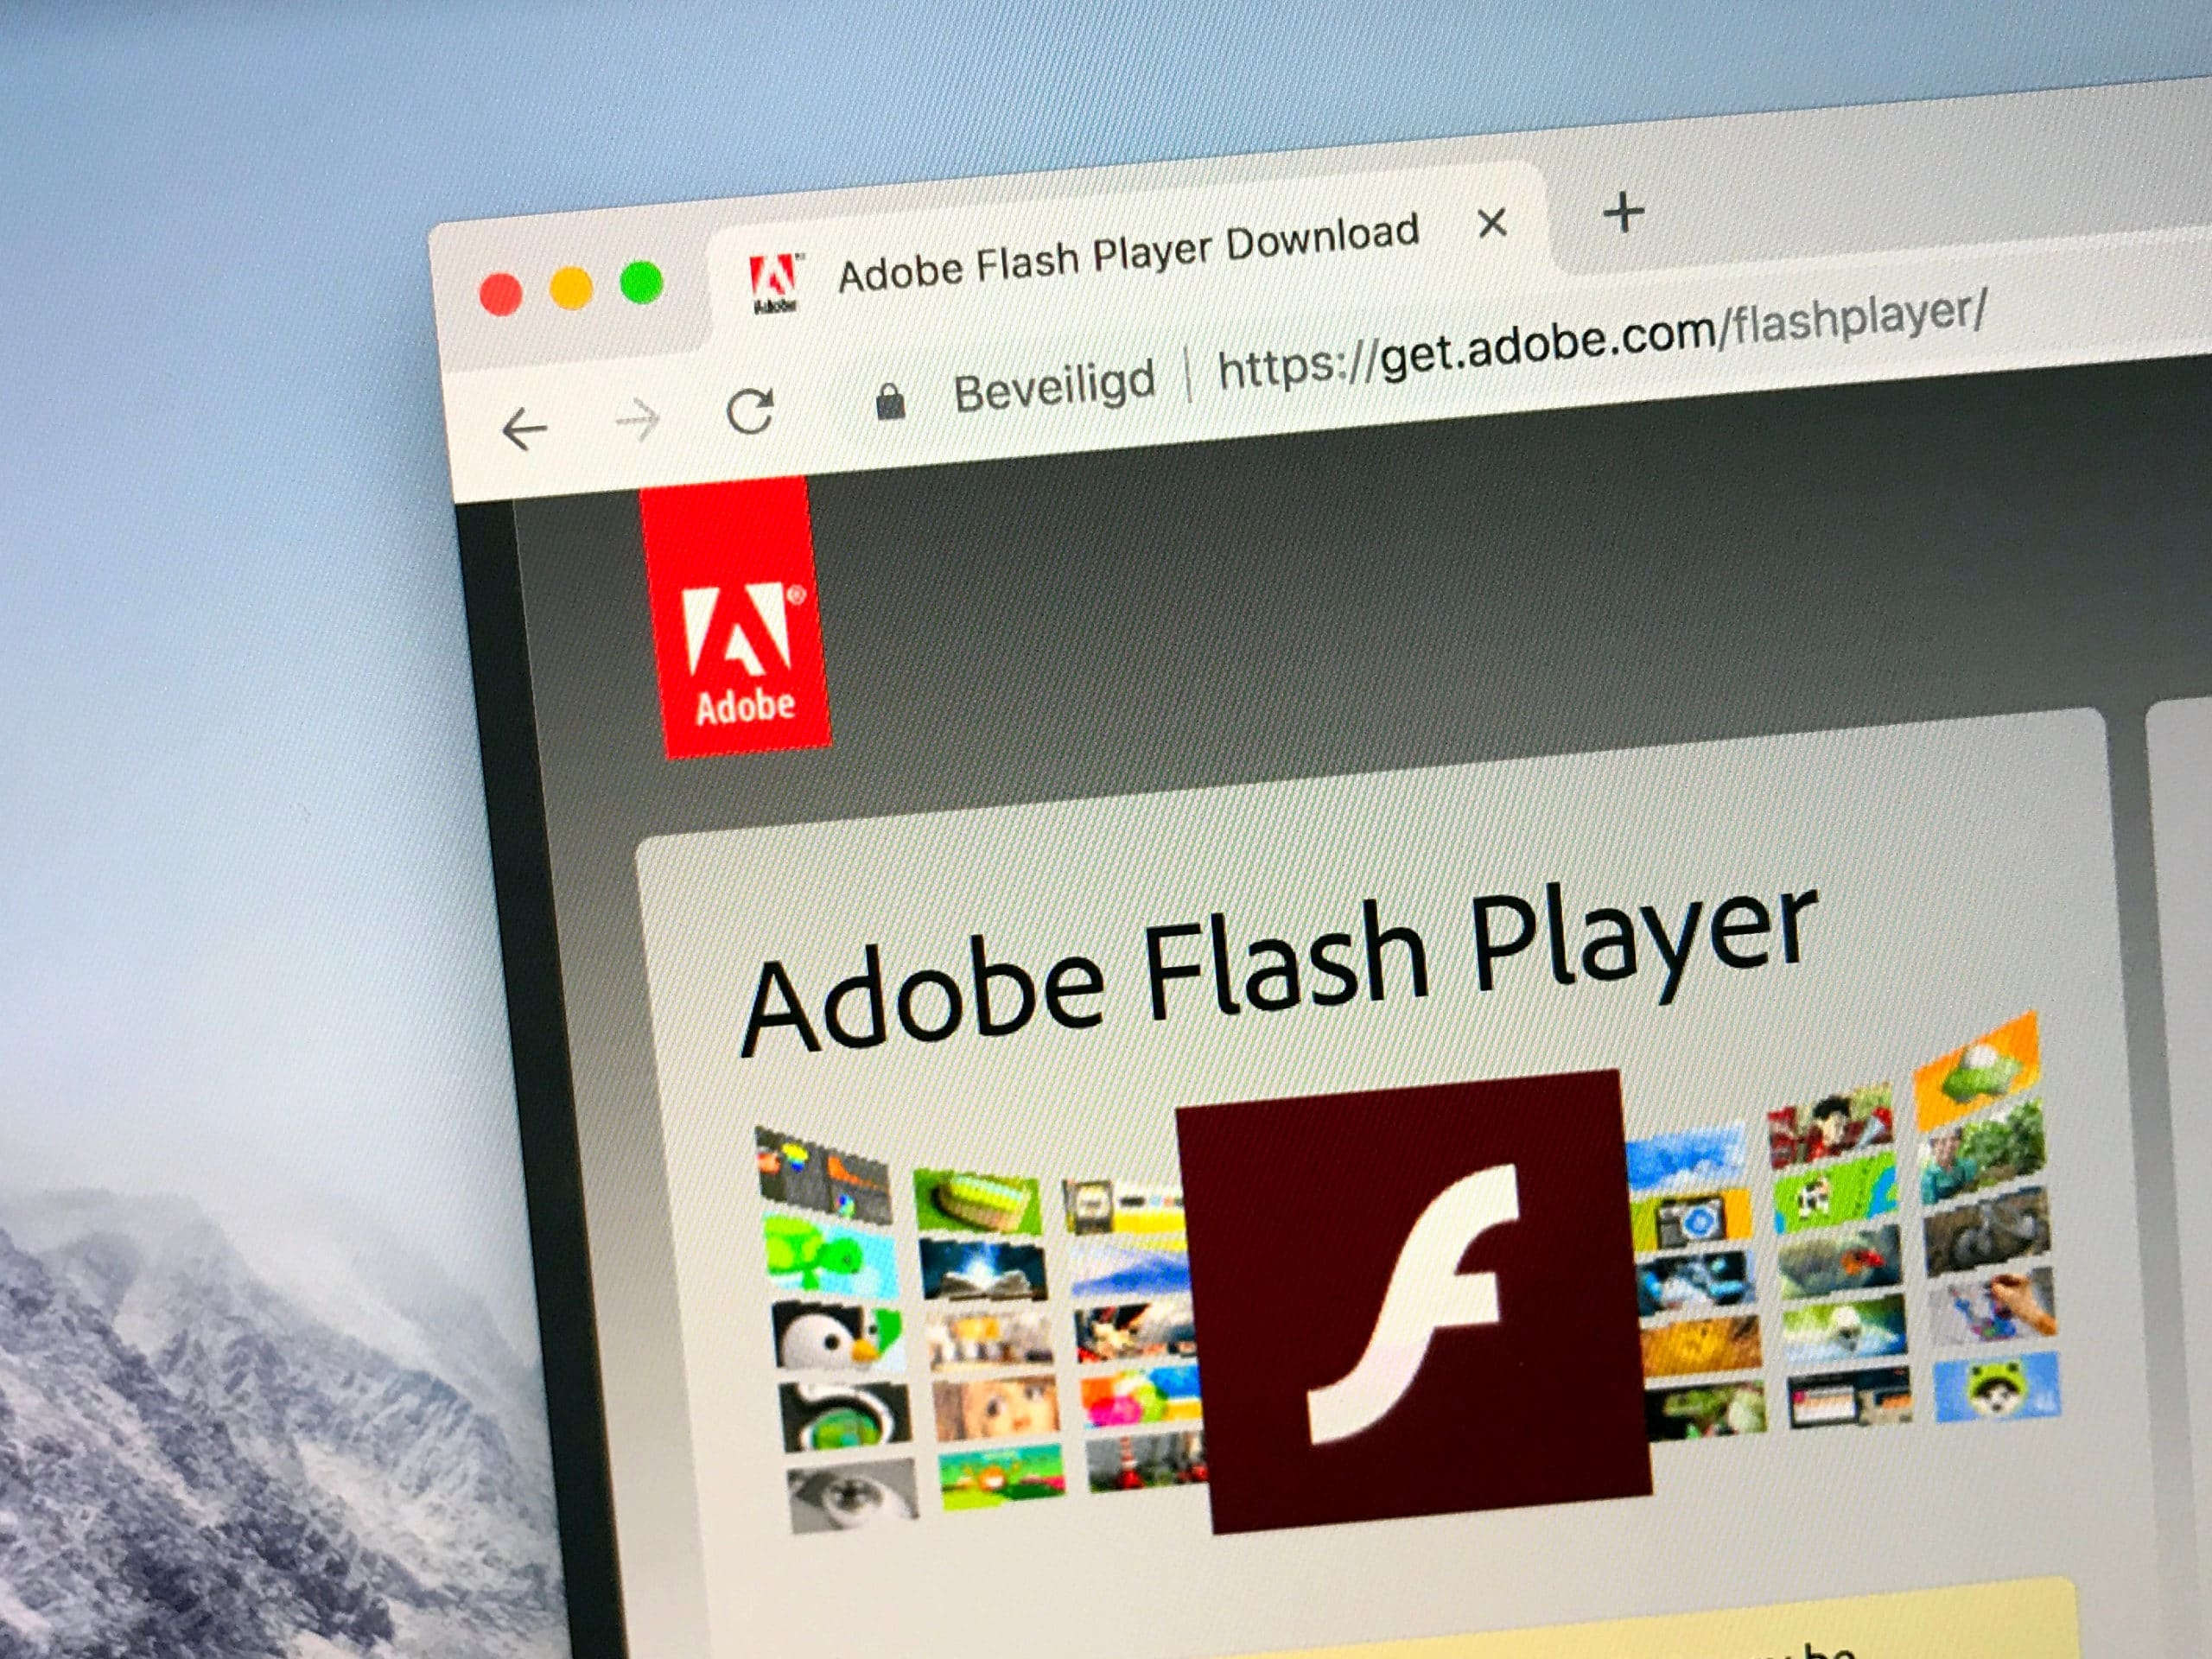 Adobe Flash player site